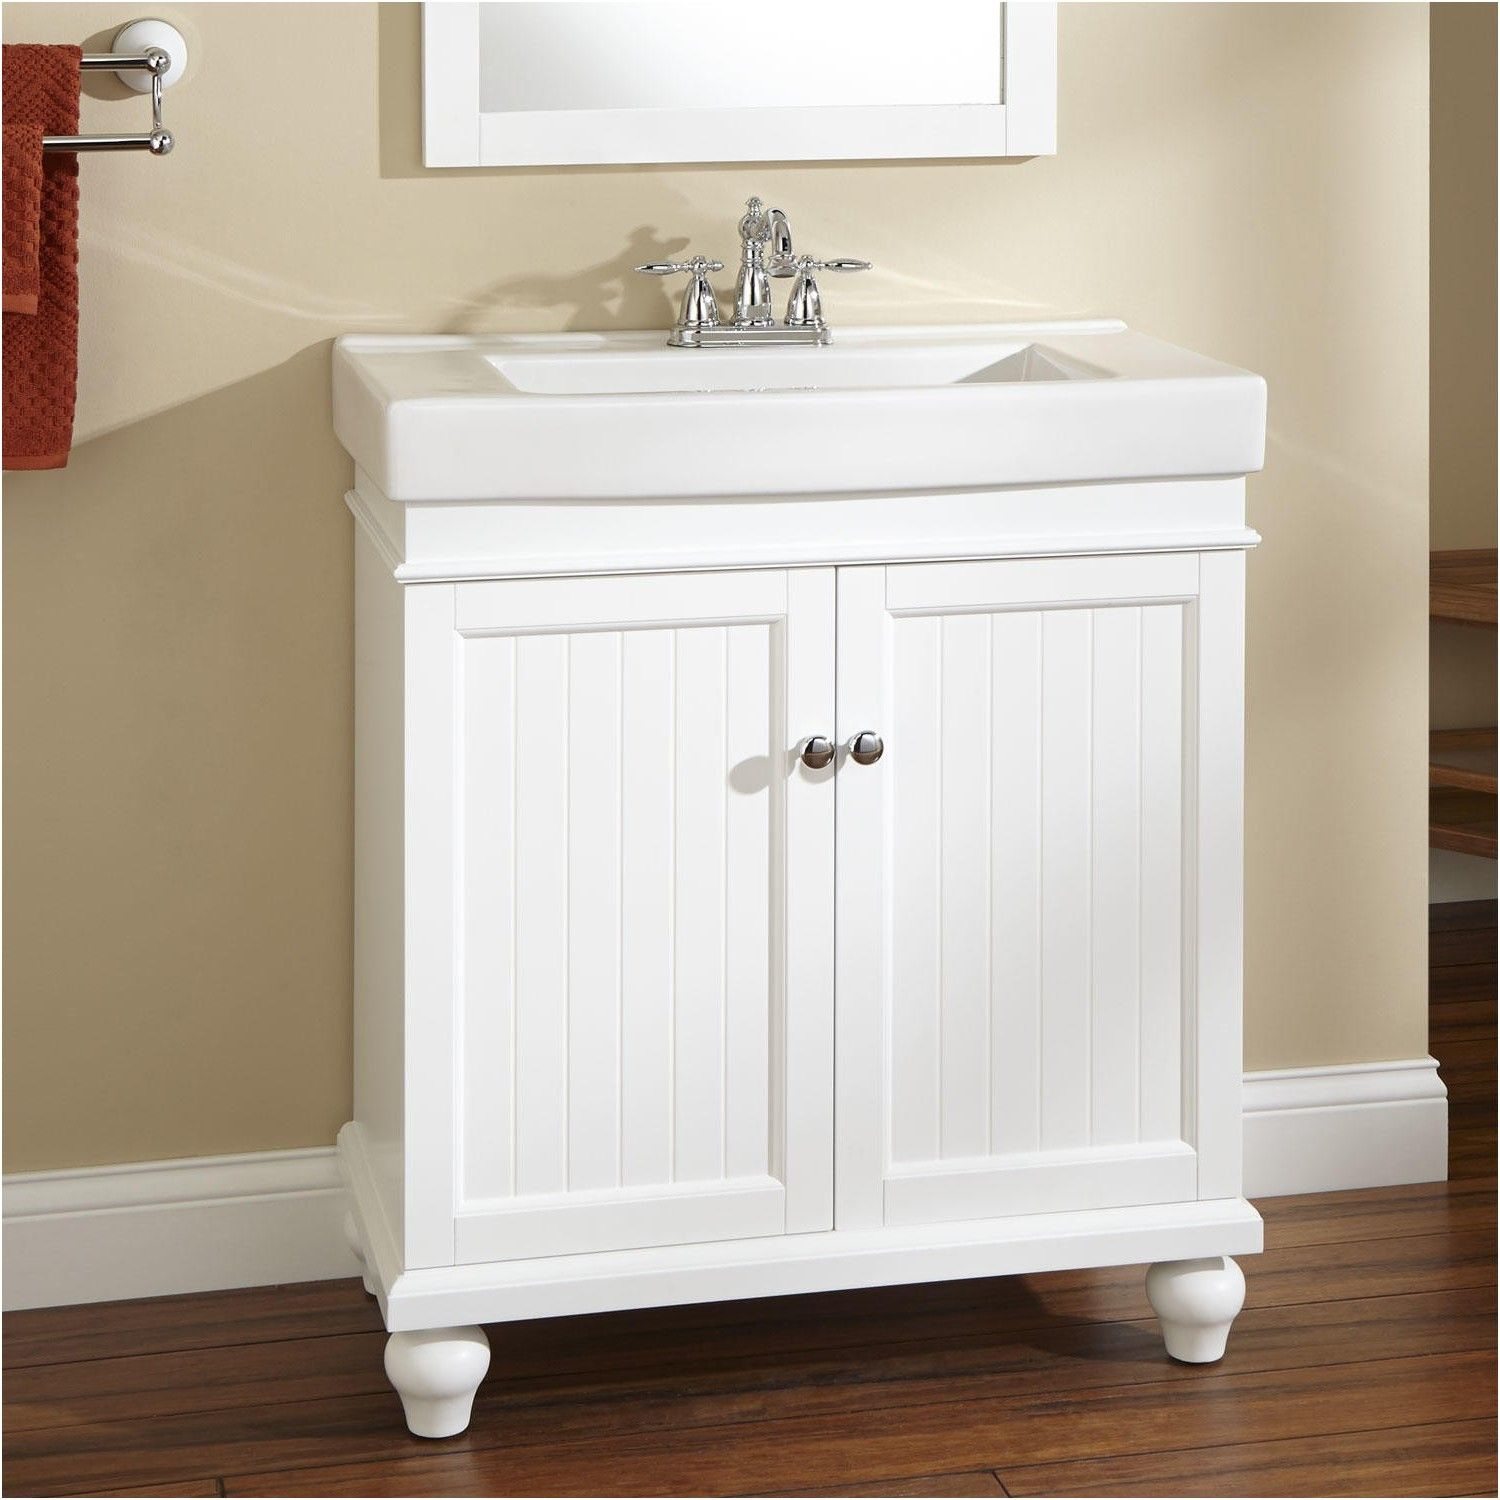 Inspirational 30 Bathroom Vanity Cabinet